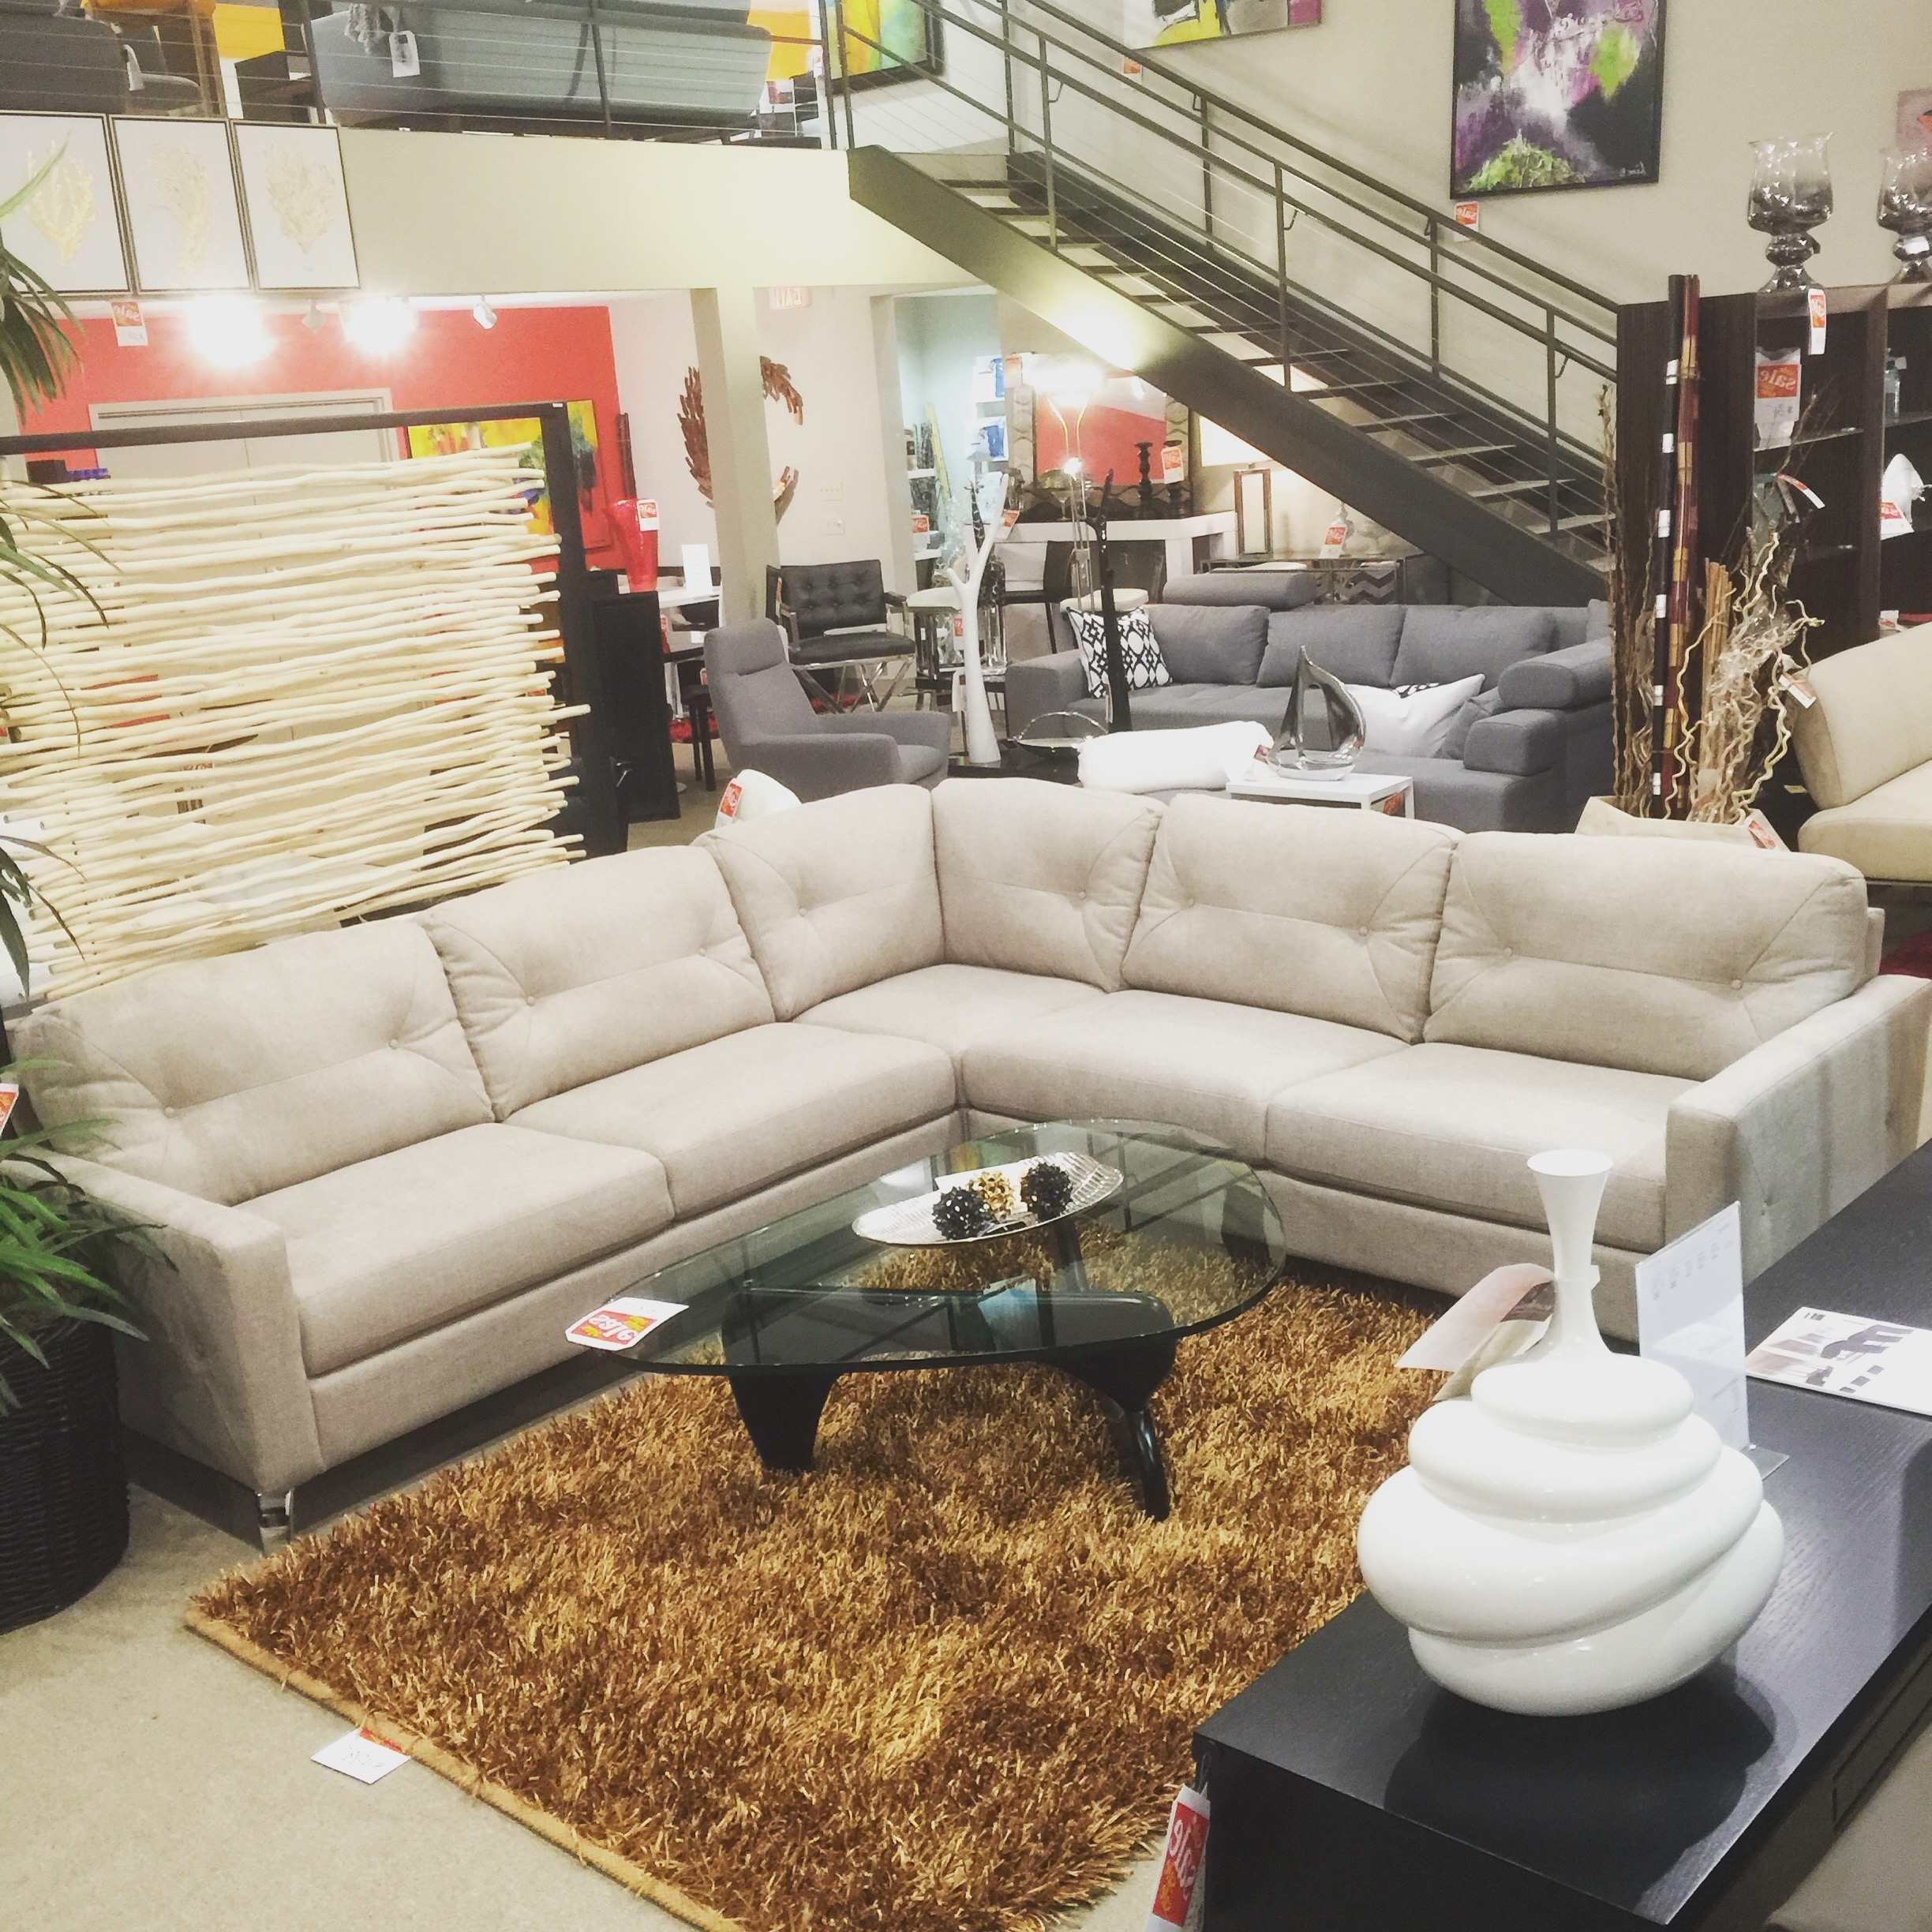 Popular New Orleans Sectional Sofas Intended For Scandinavia Inc. Metairie New Orleans Louisiana Palliser Dot (Gallery 2 of 15)